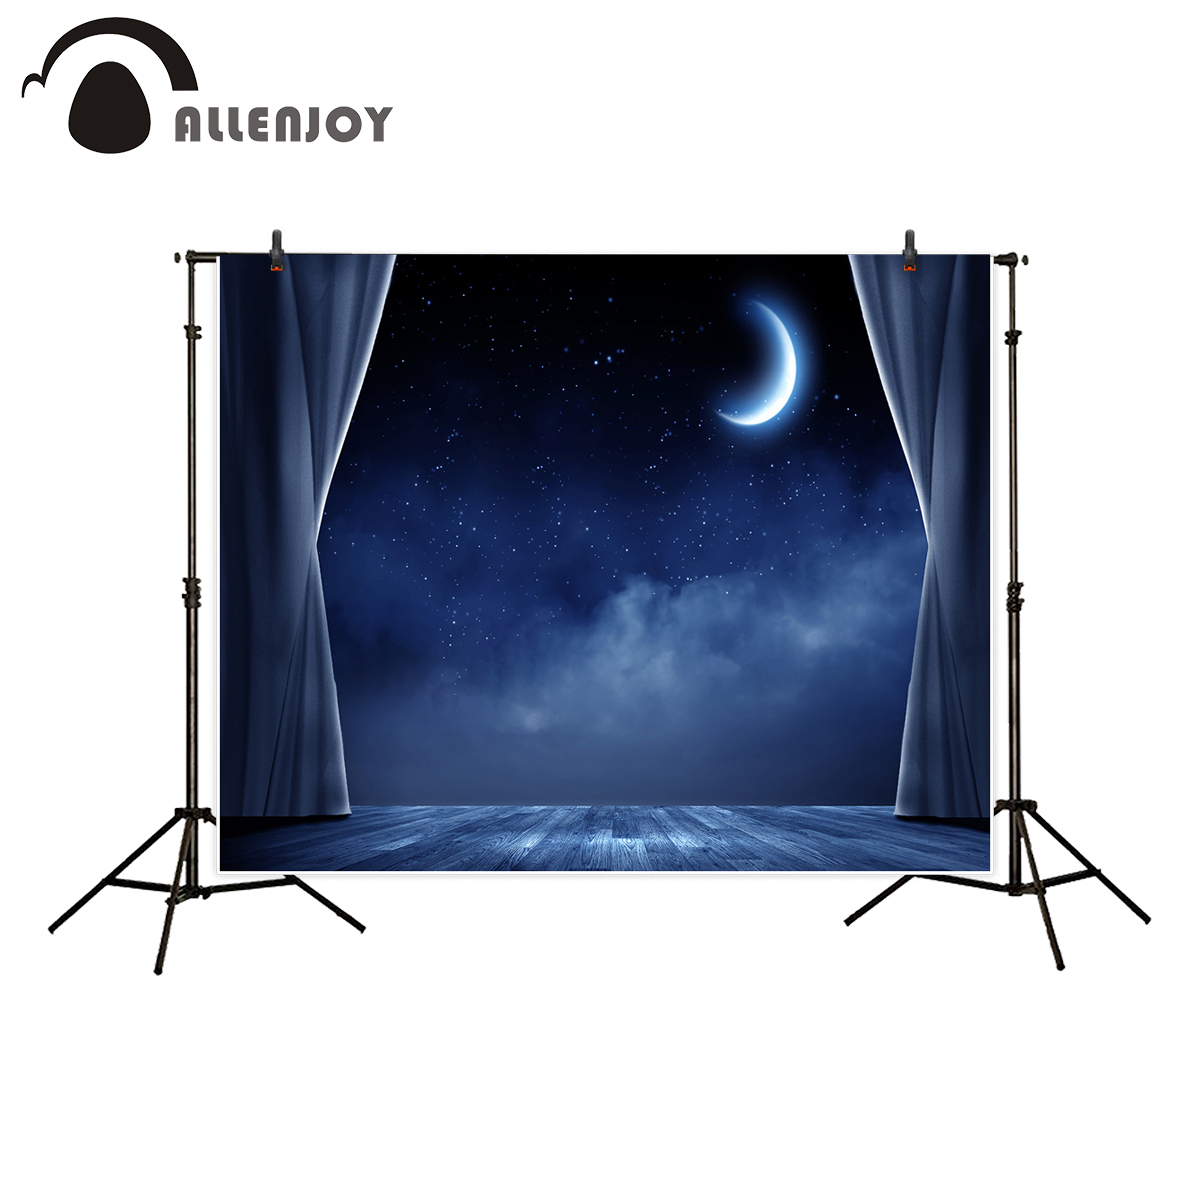 Allenjoy photography backdrop Gorgeous blue stars night sky moon clouds stage curtains background for photo studio fotografica newborn photography background blue sky white clouds photo backdrop vinyl balloons scattered petals backgrounds for photo studio